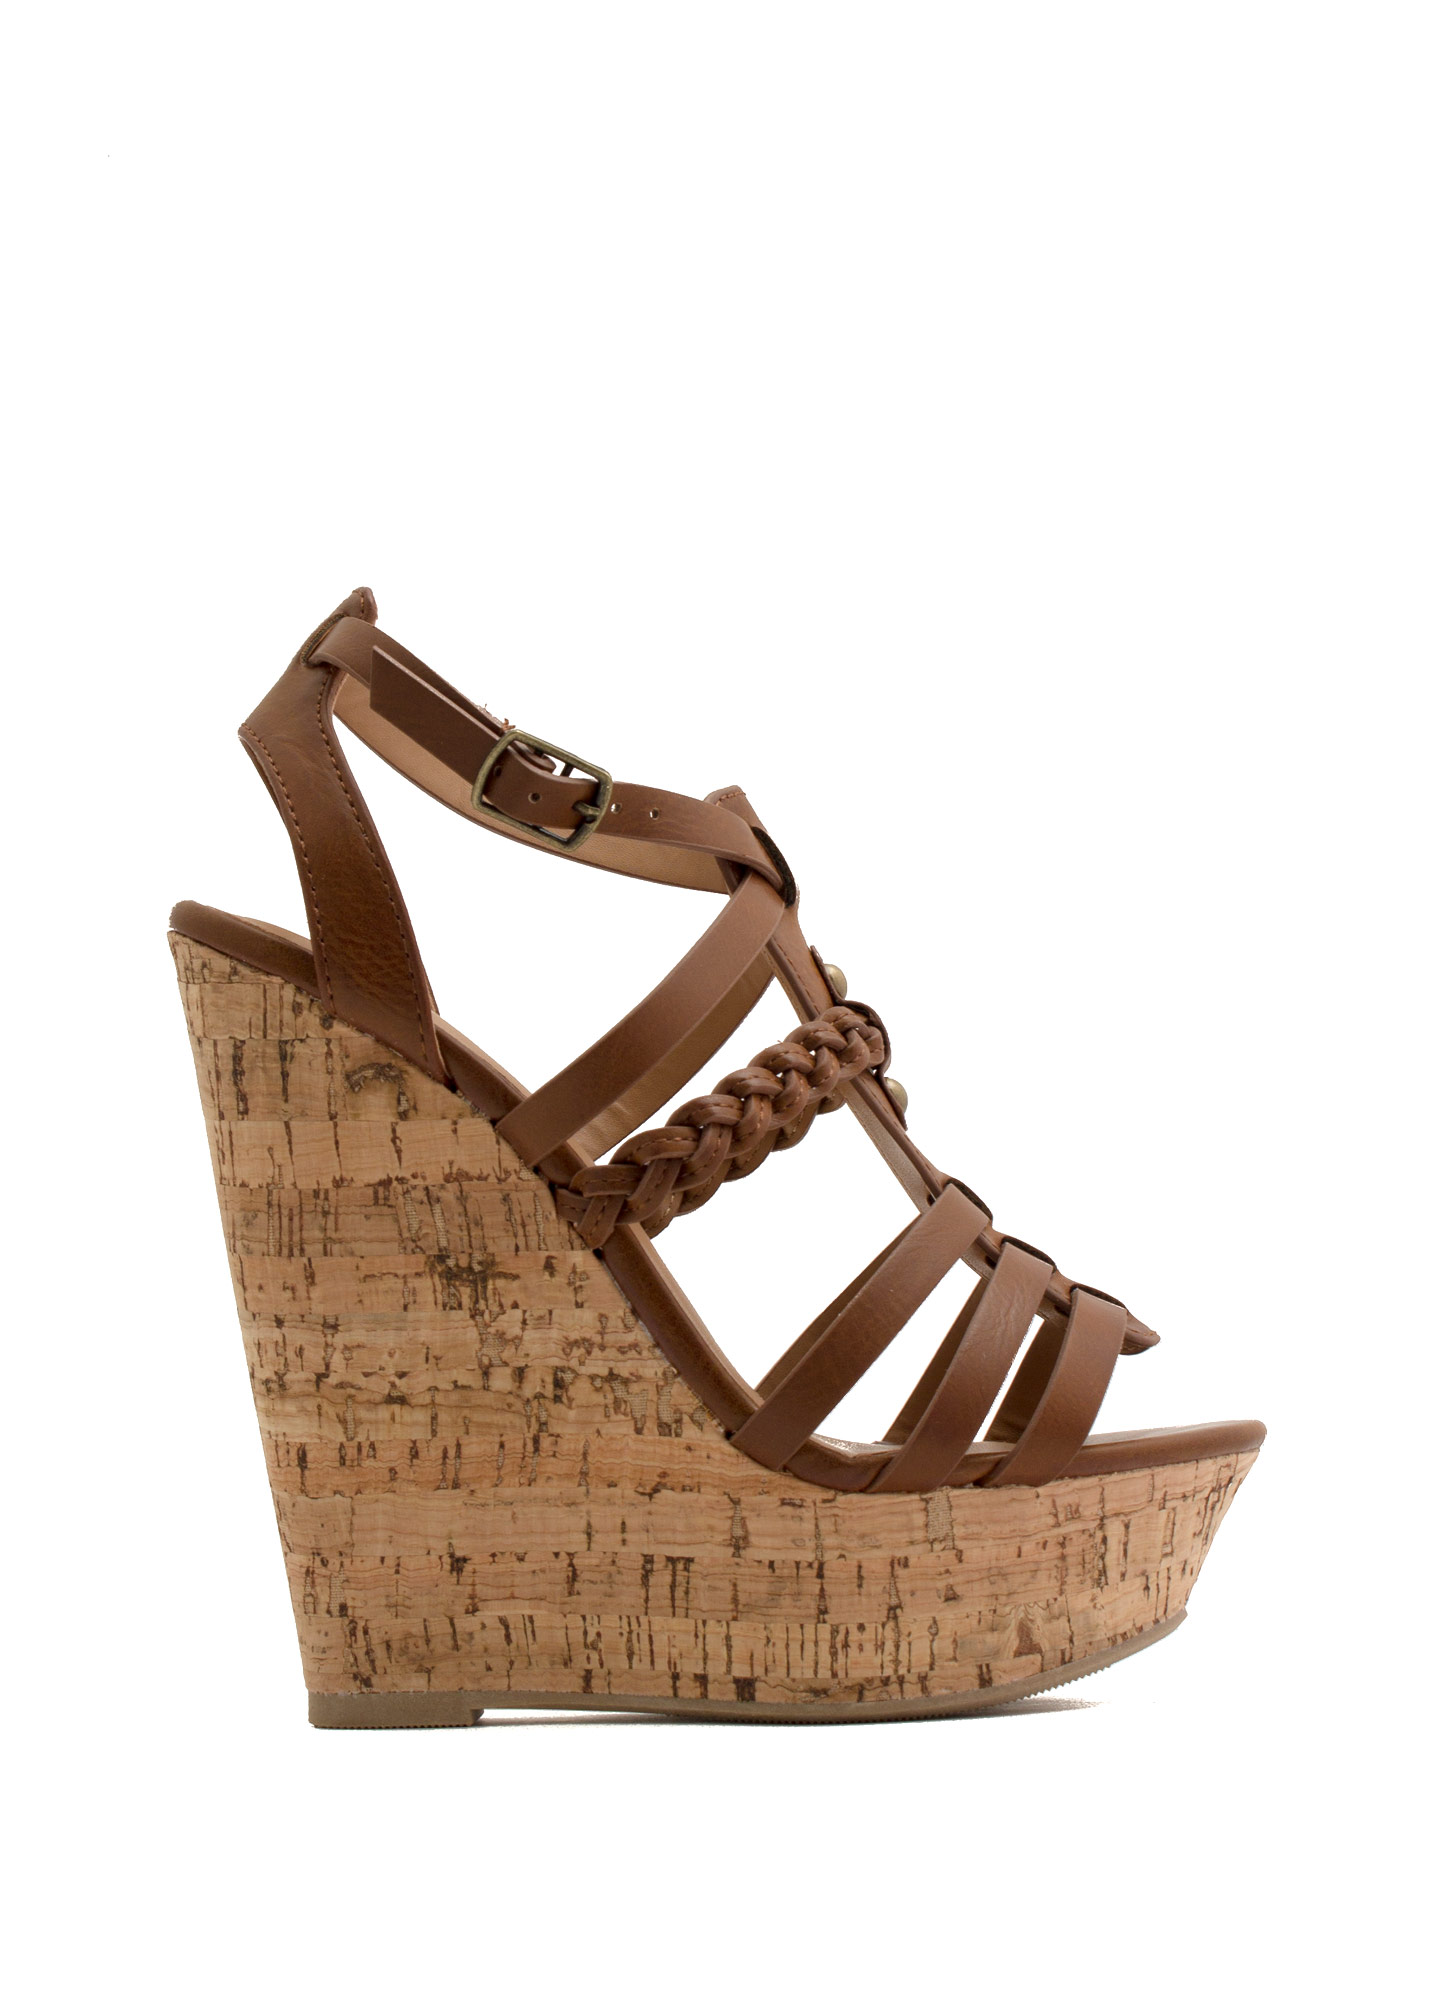 Braided 'N Strappy Gladiator Wedges TAN